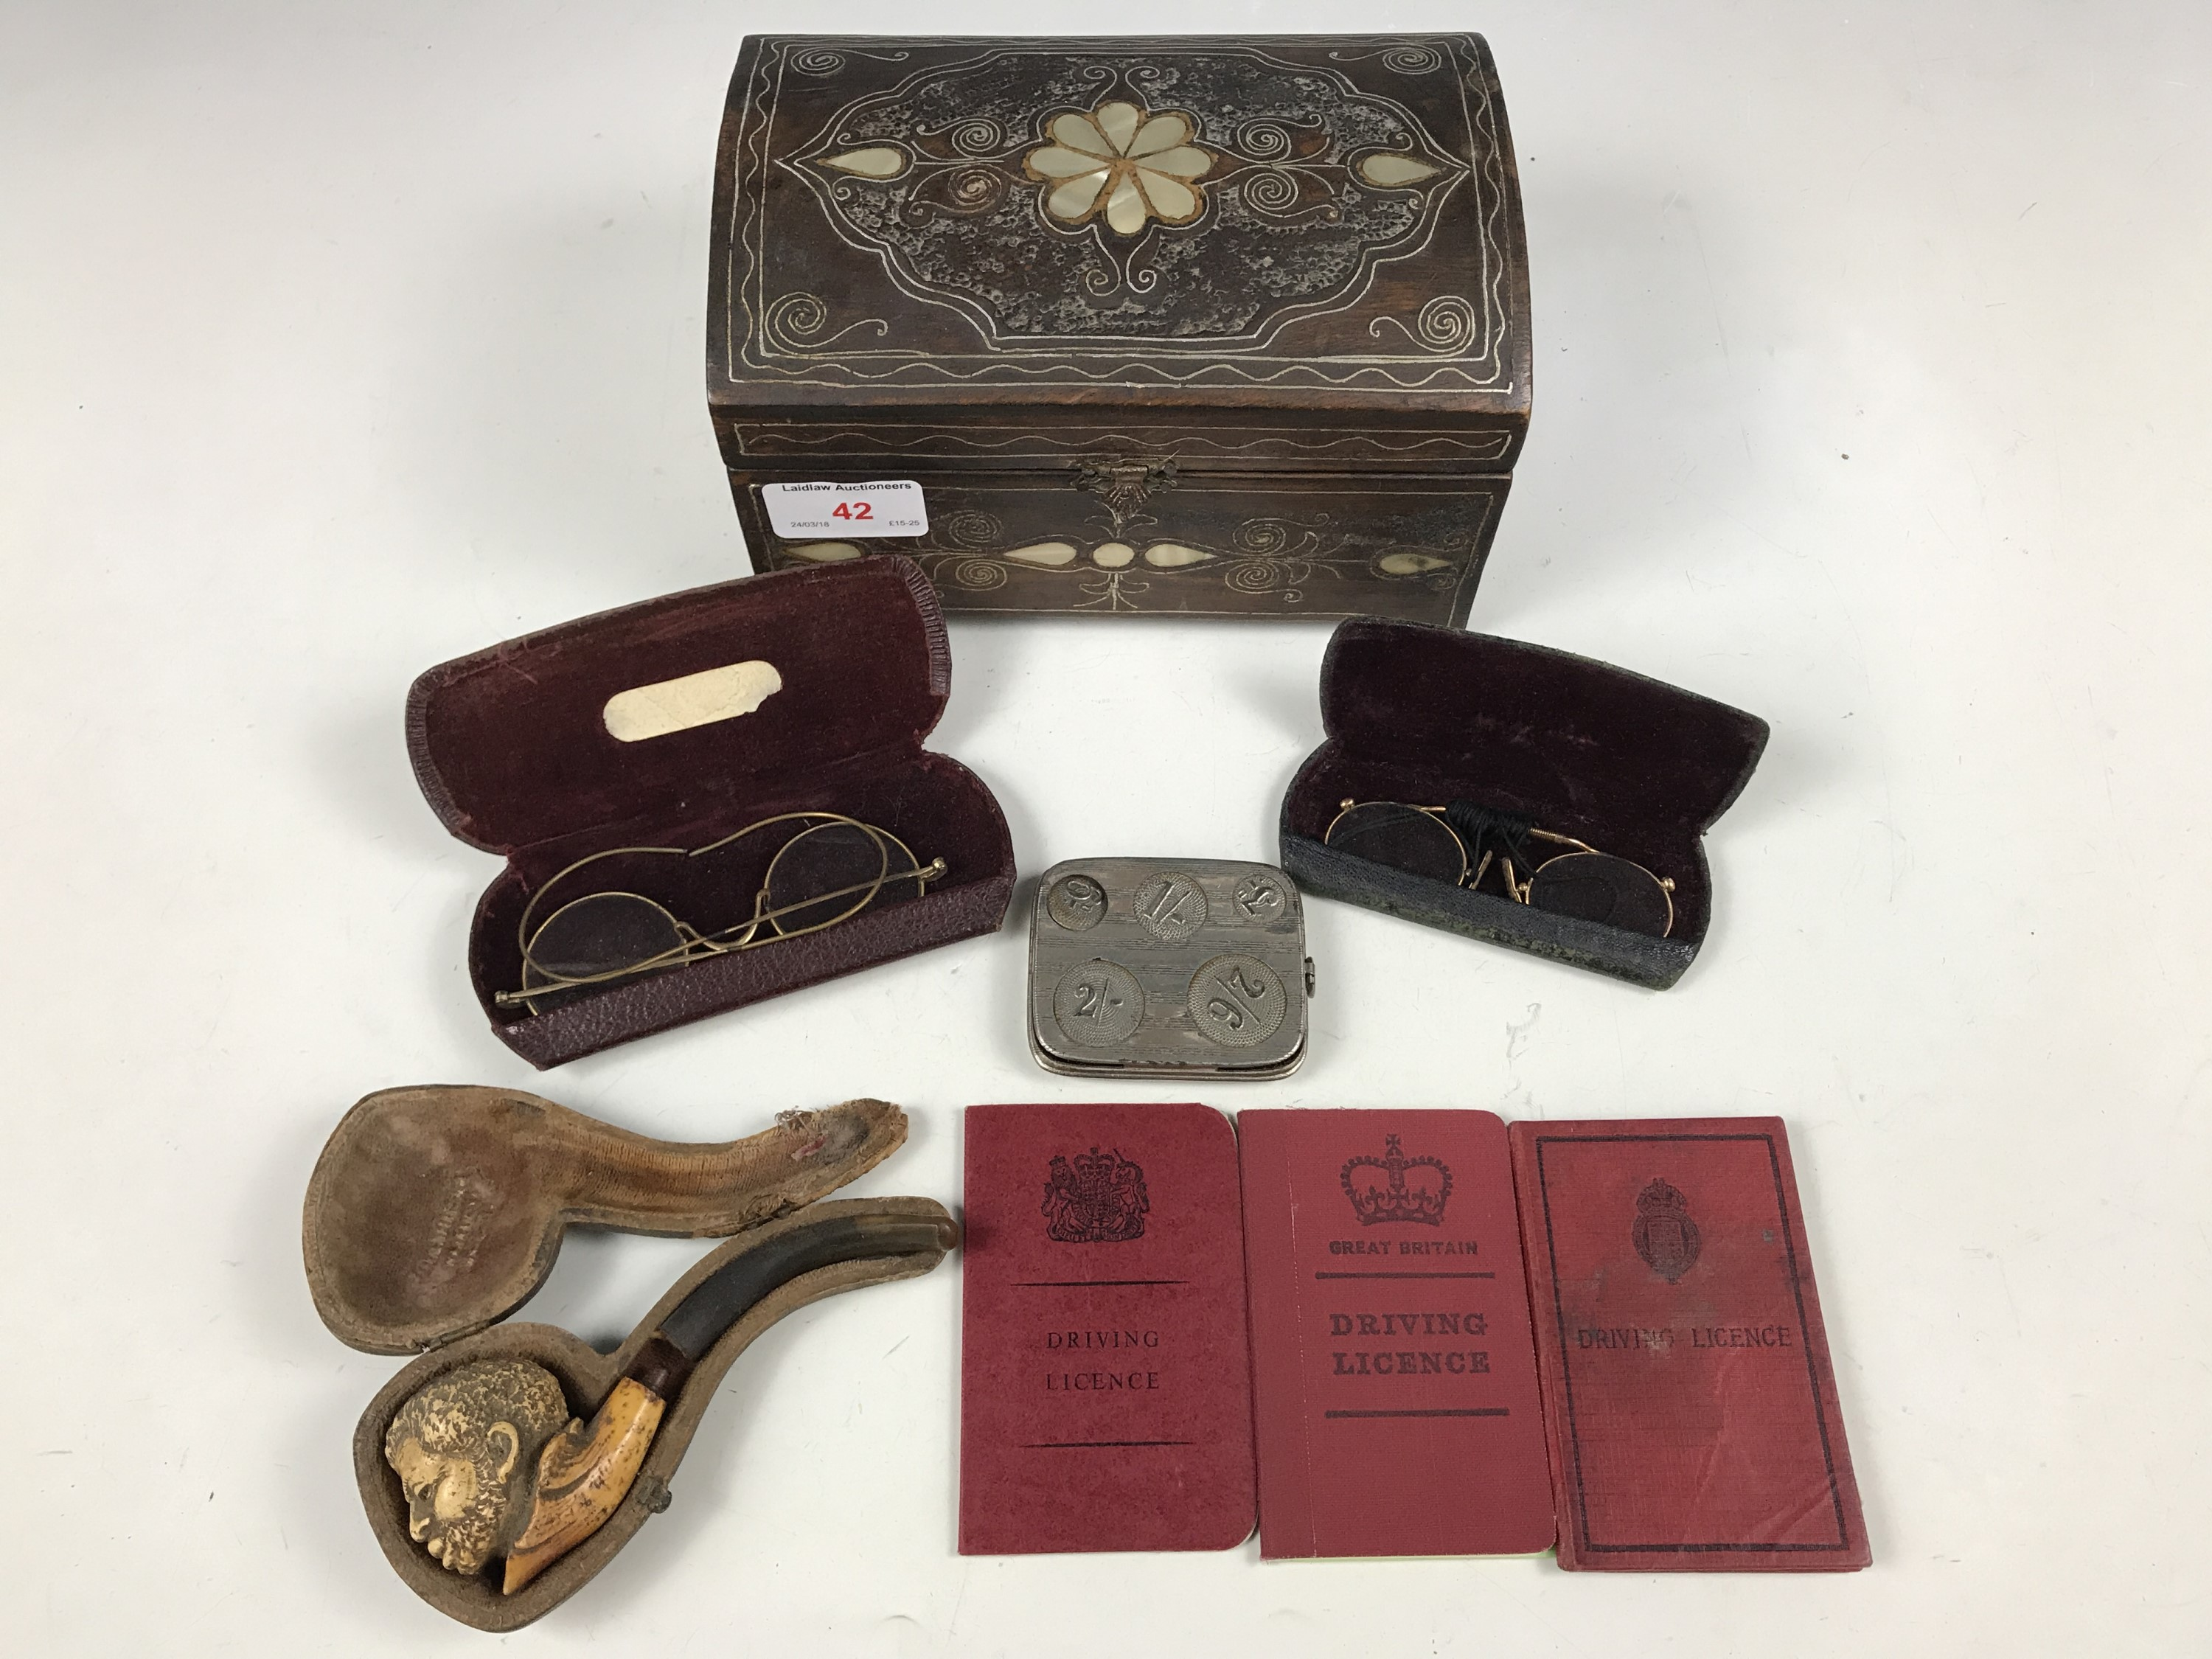 Lot 42 - Sundry collectors' items including a meerschaum pipe, two cased pairs of pince-nez and a coin holder